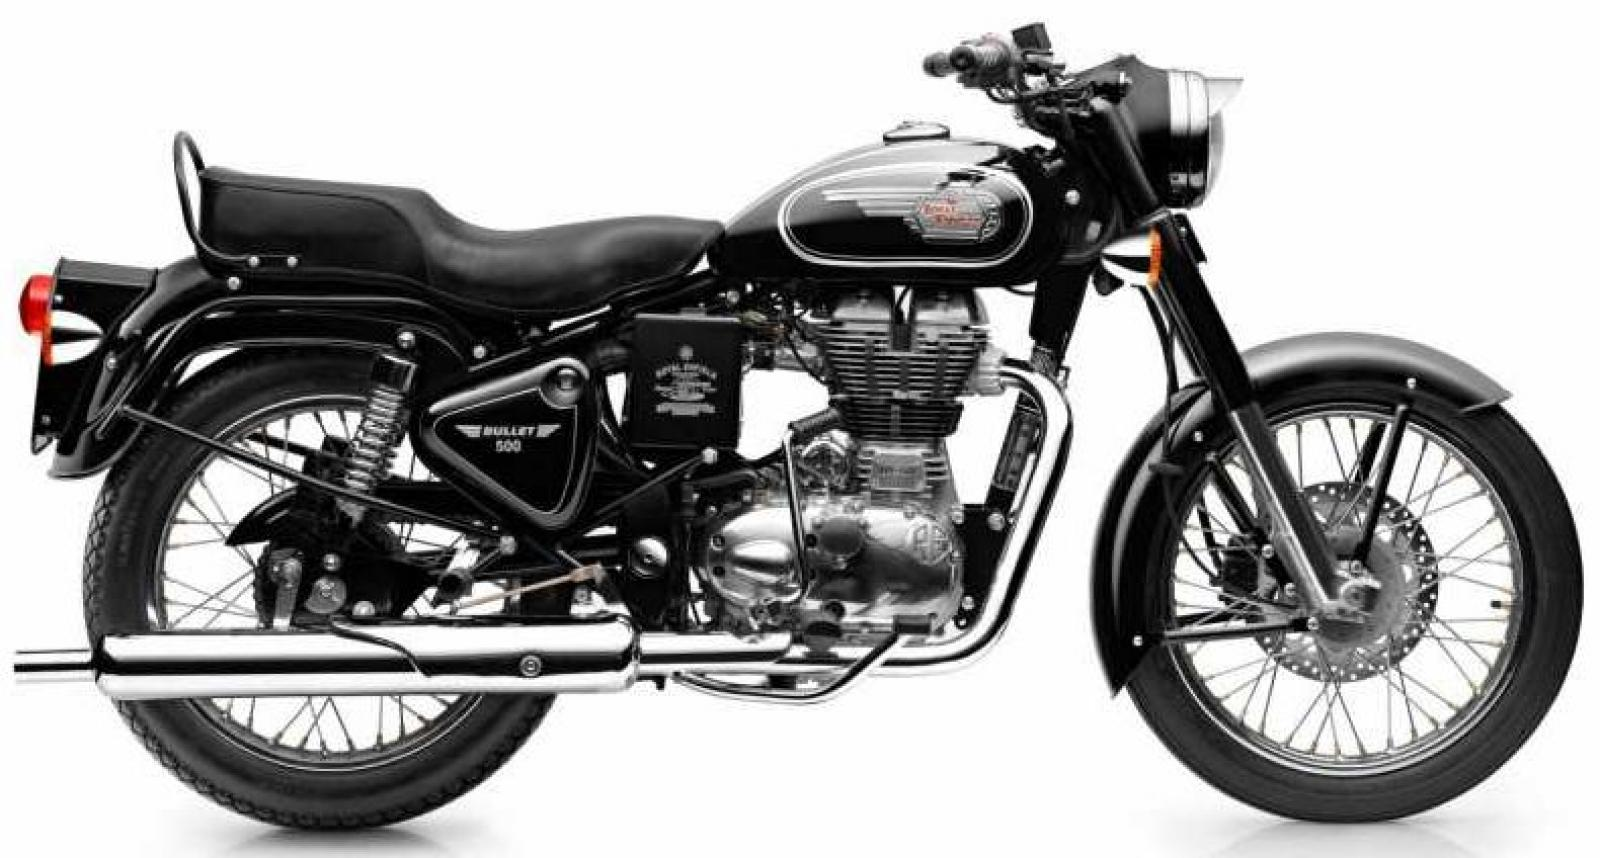 enfield enfield bullet 500 standard moto zombdrive com. Black Bedroom Furniture Sets. Home Design Ideas